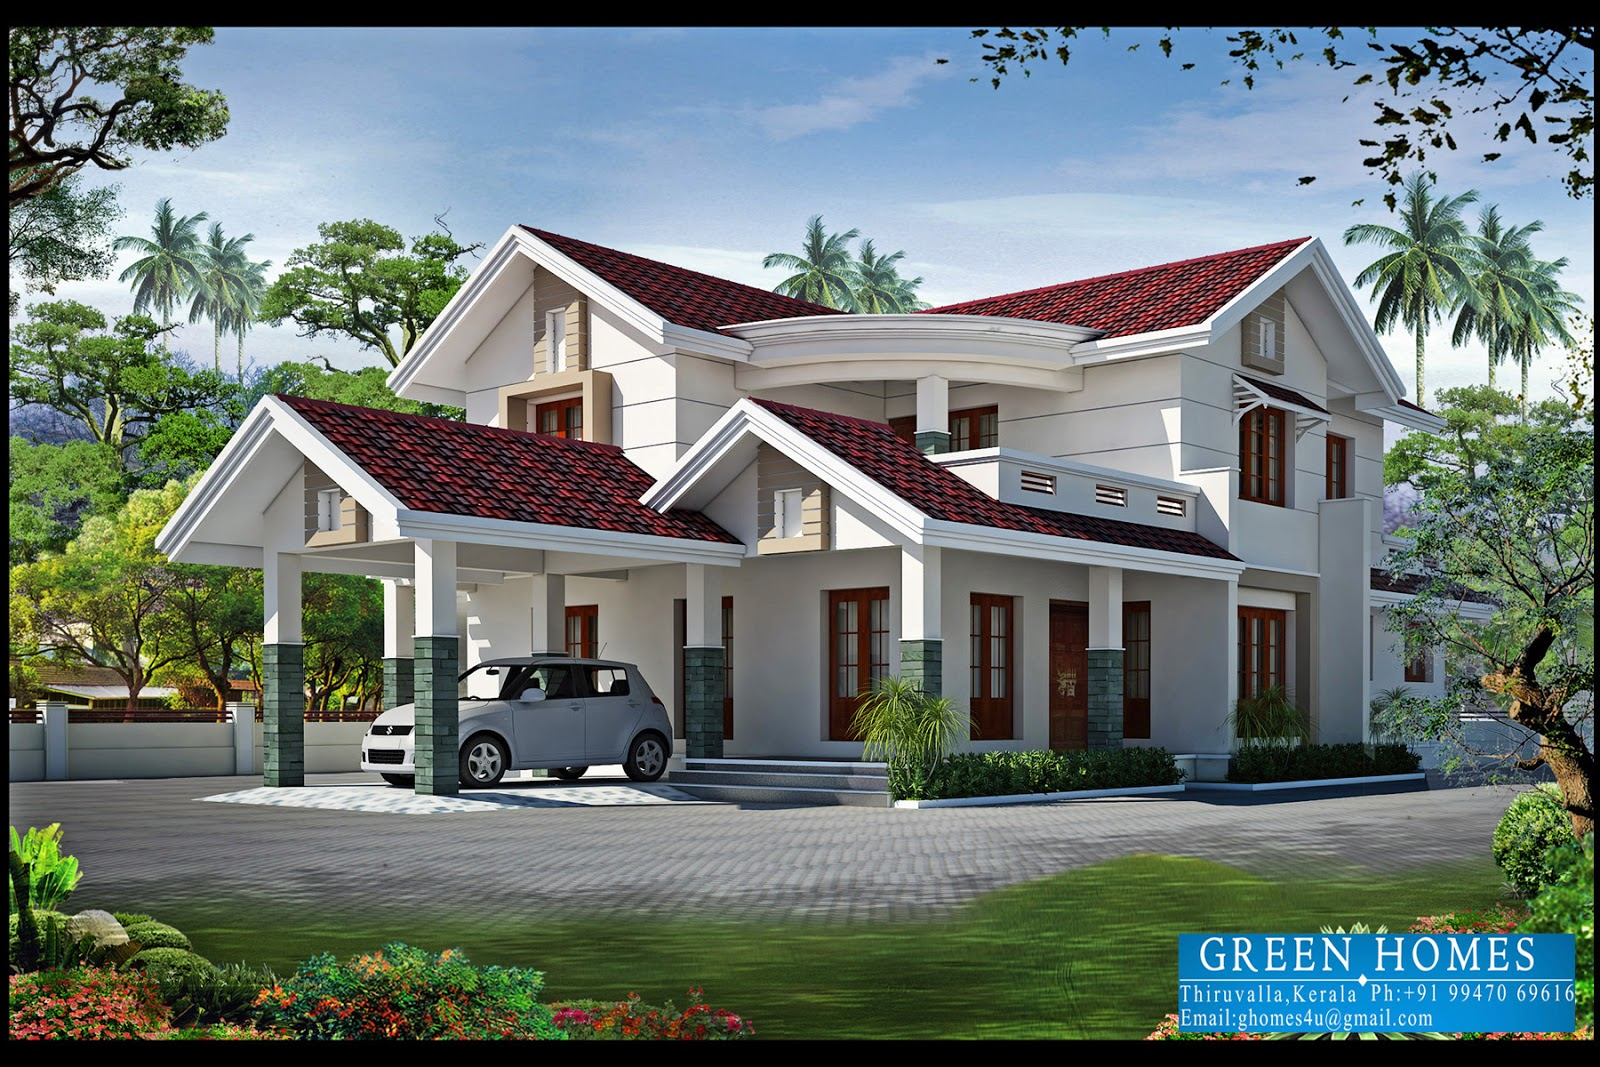 Green homes december 2012 for Home designs kerala photos